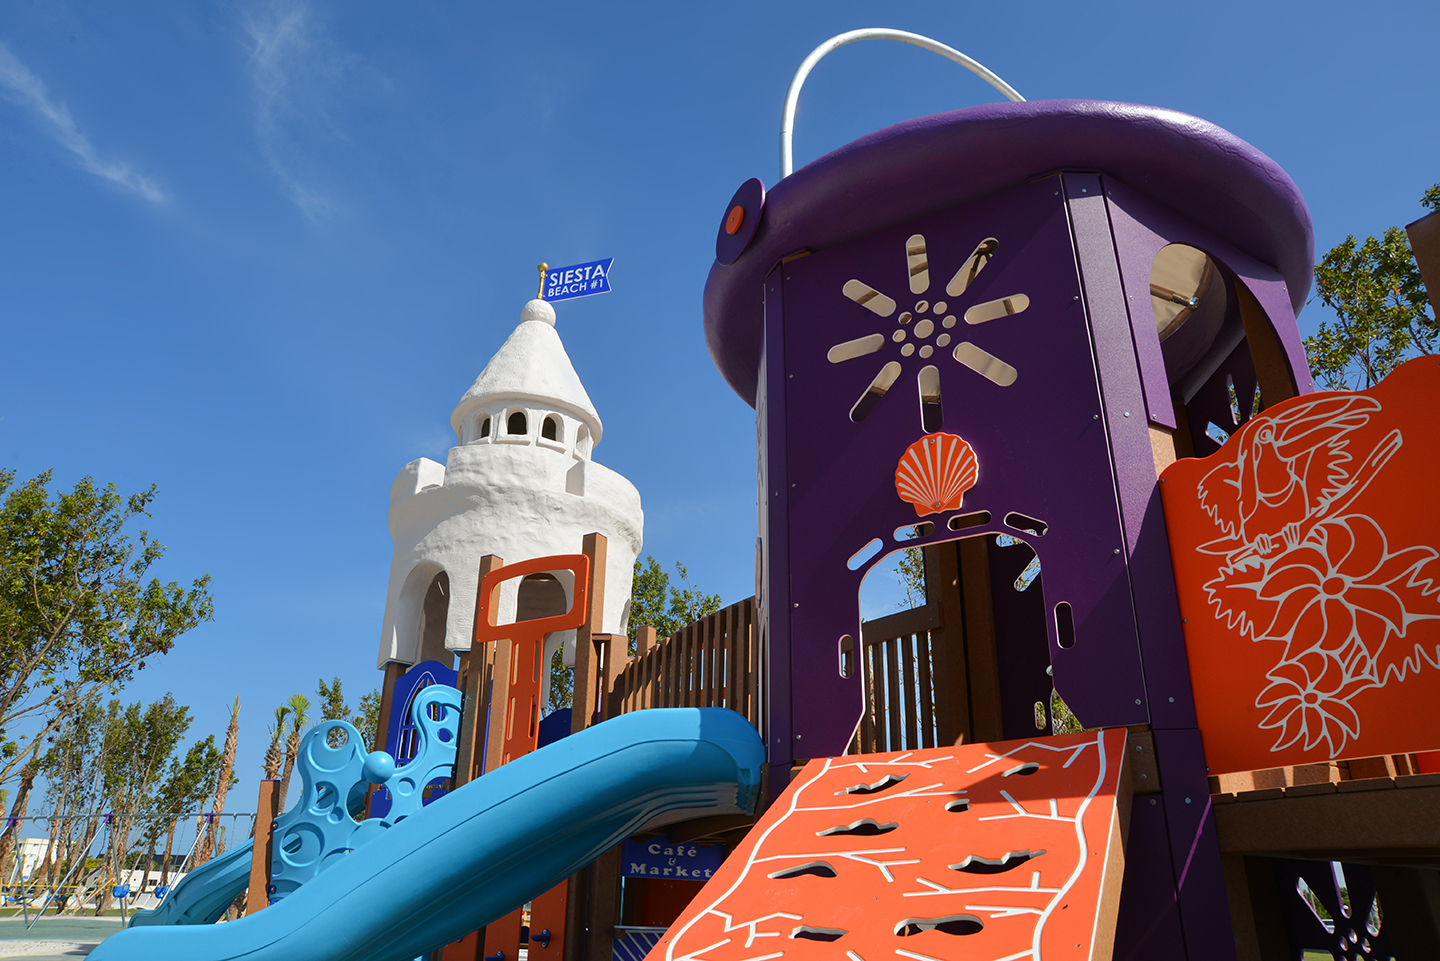 Siesta Beach Playground equipment